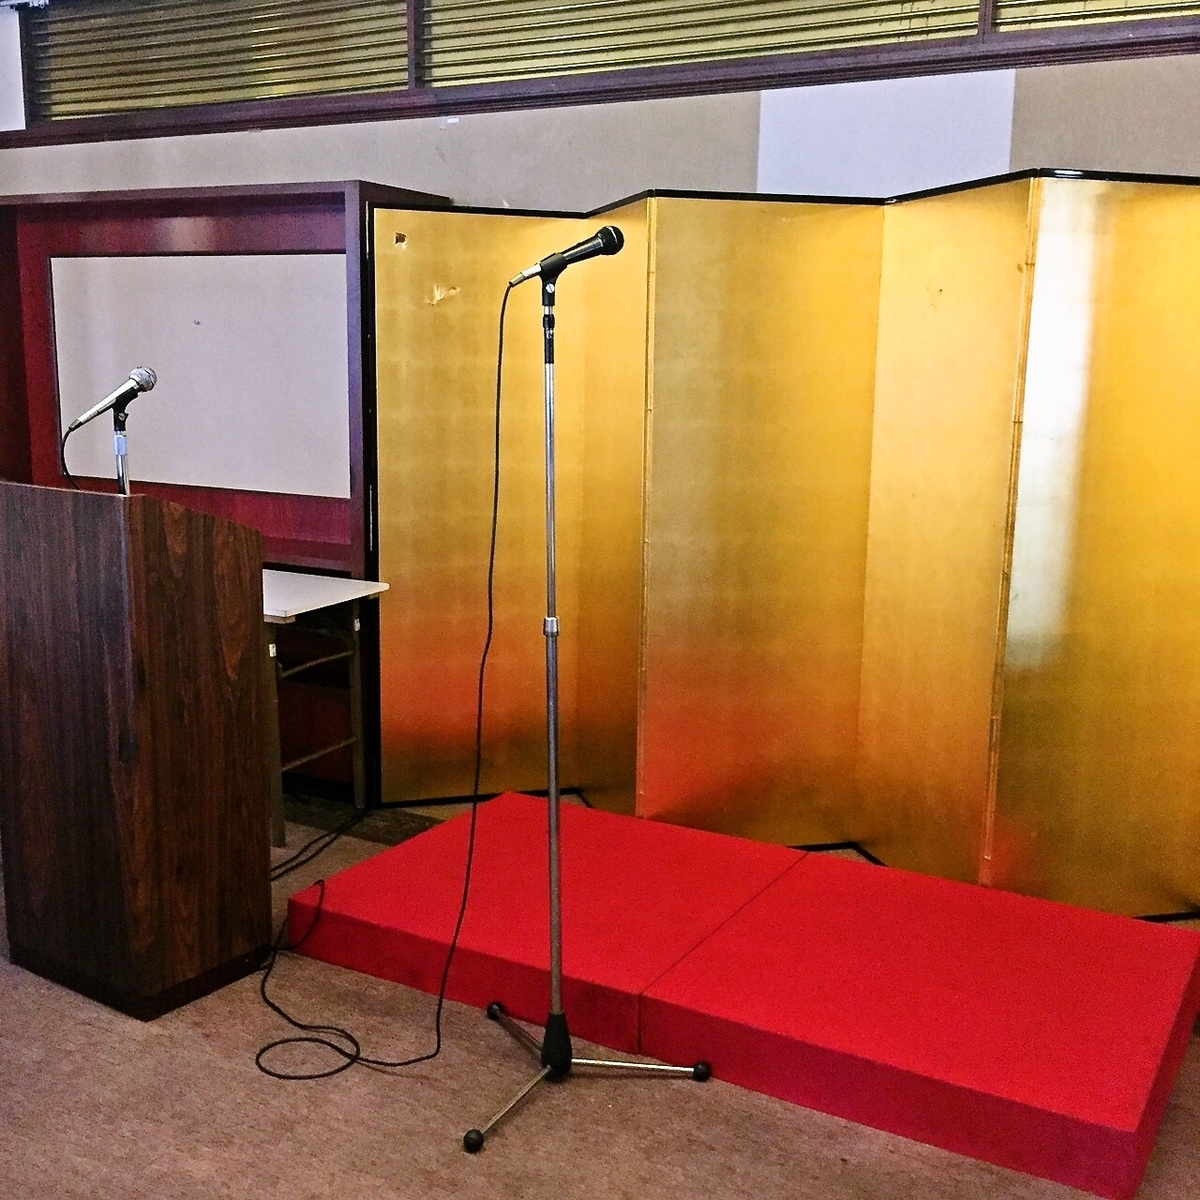 We also have a stage.You can use it even for celebrations such as the awards ceremony.